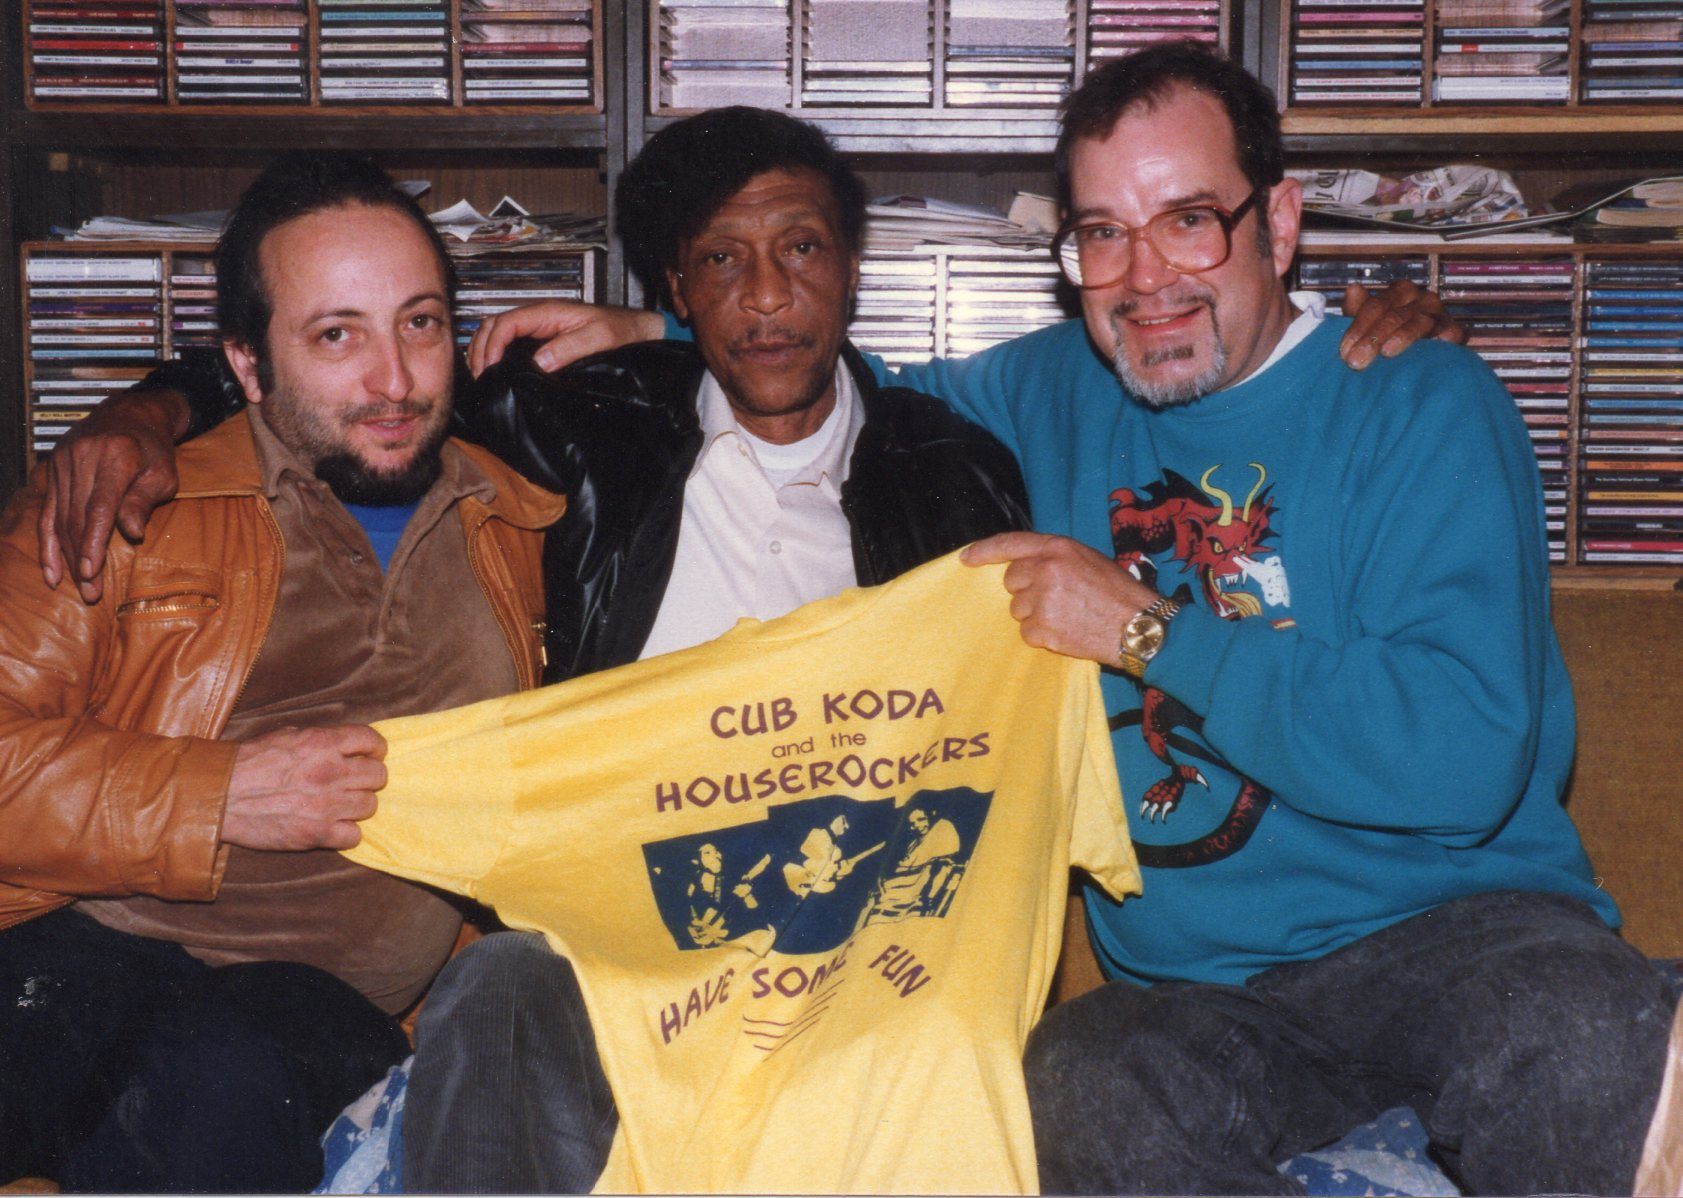 Brewer Phillips of Hound Dog Taylor & the House Rockers & Ron Bartolucci & John Forward